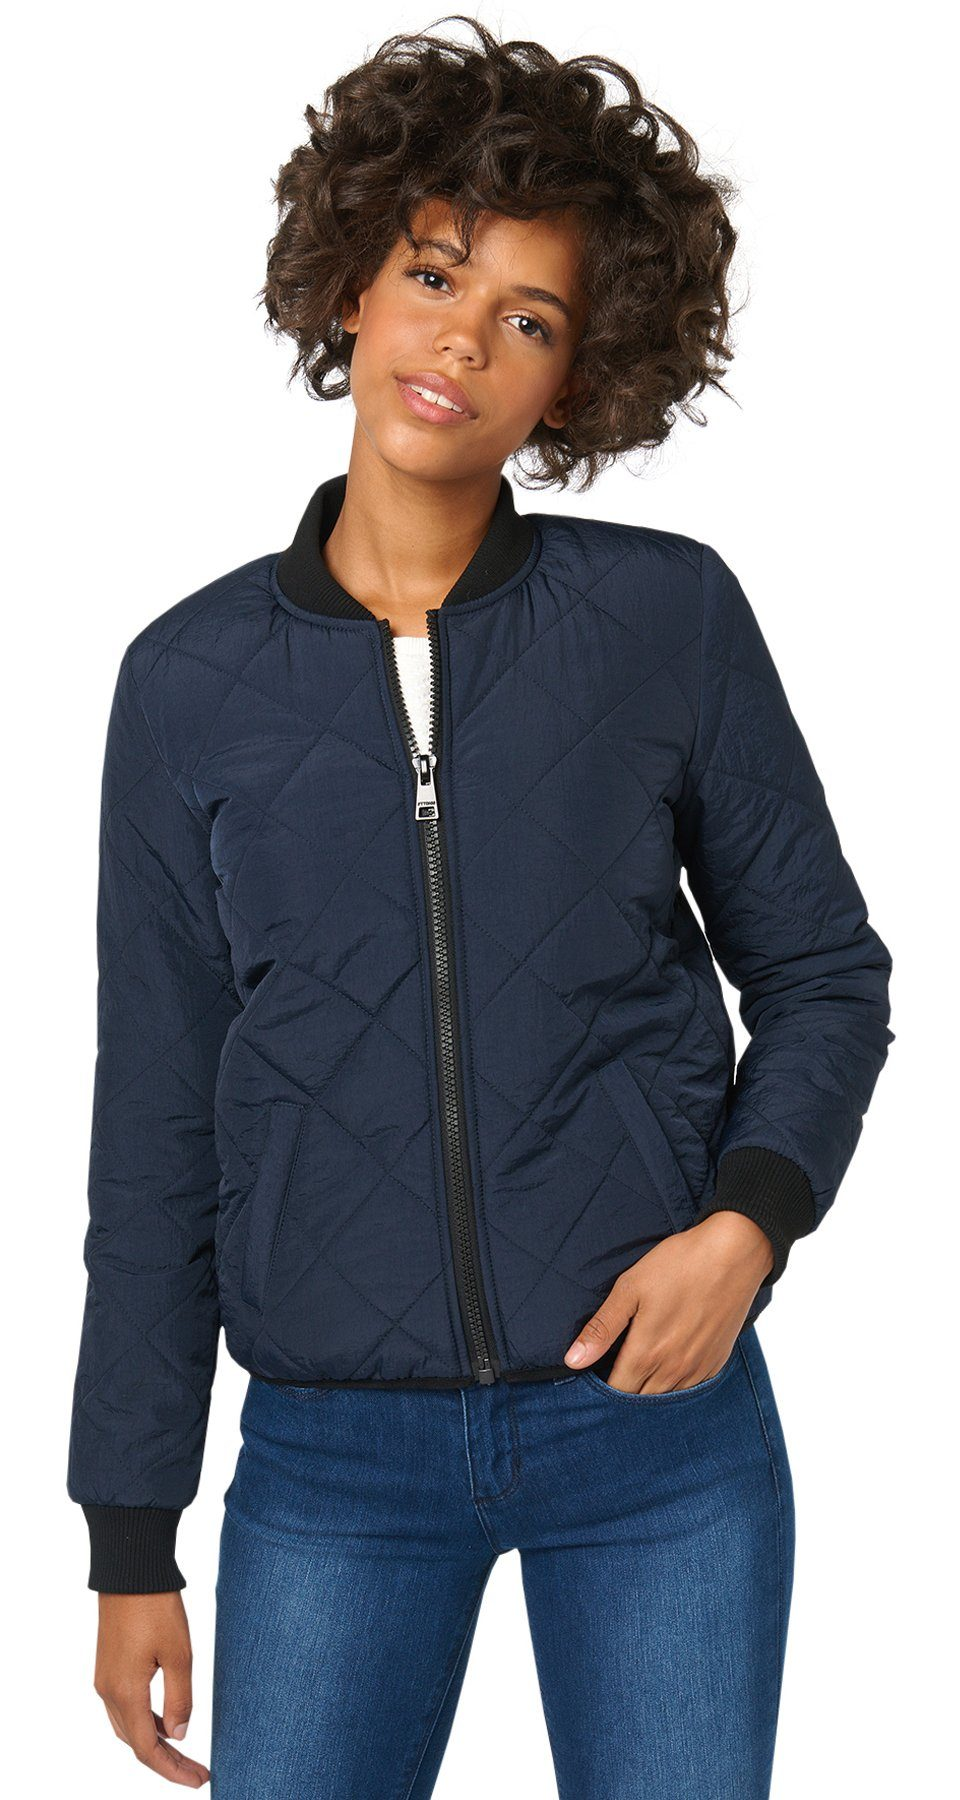 TOM TAILOR DENIM Jacke »gesteppte Bomber-Jacke«